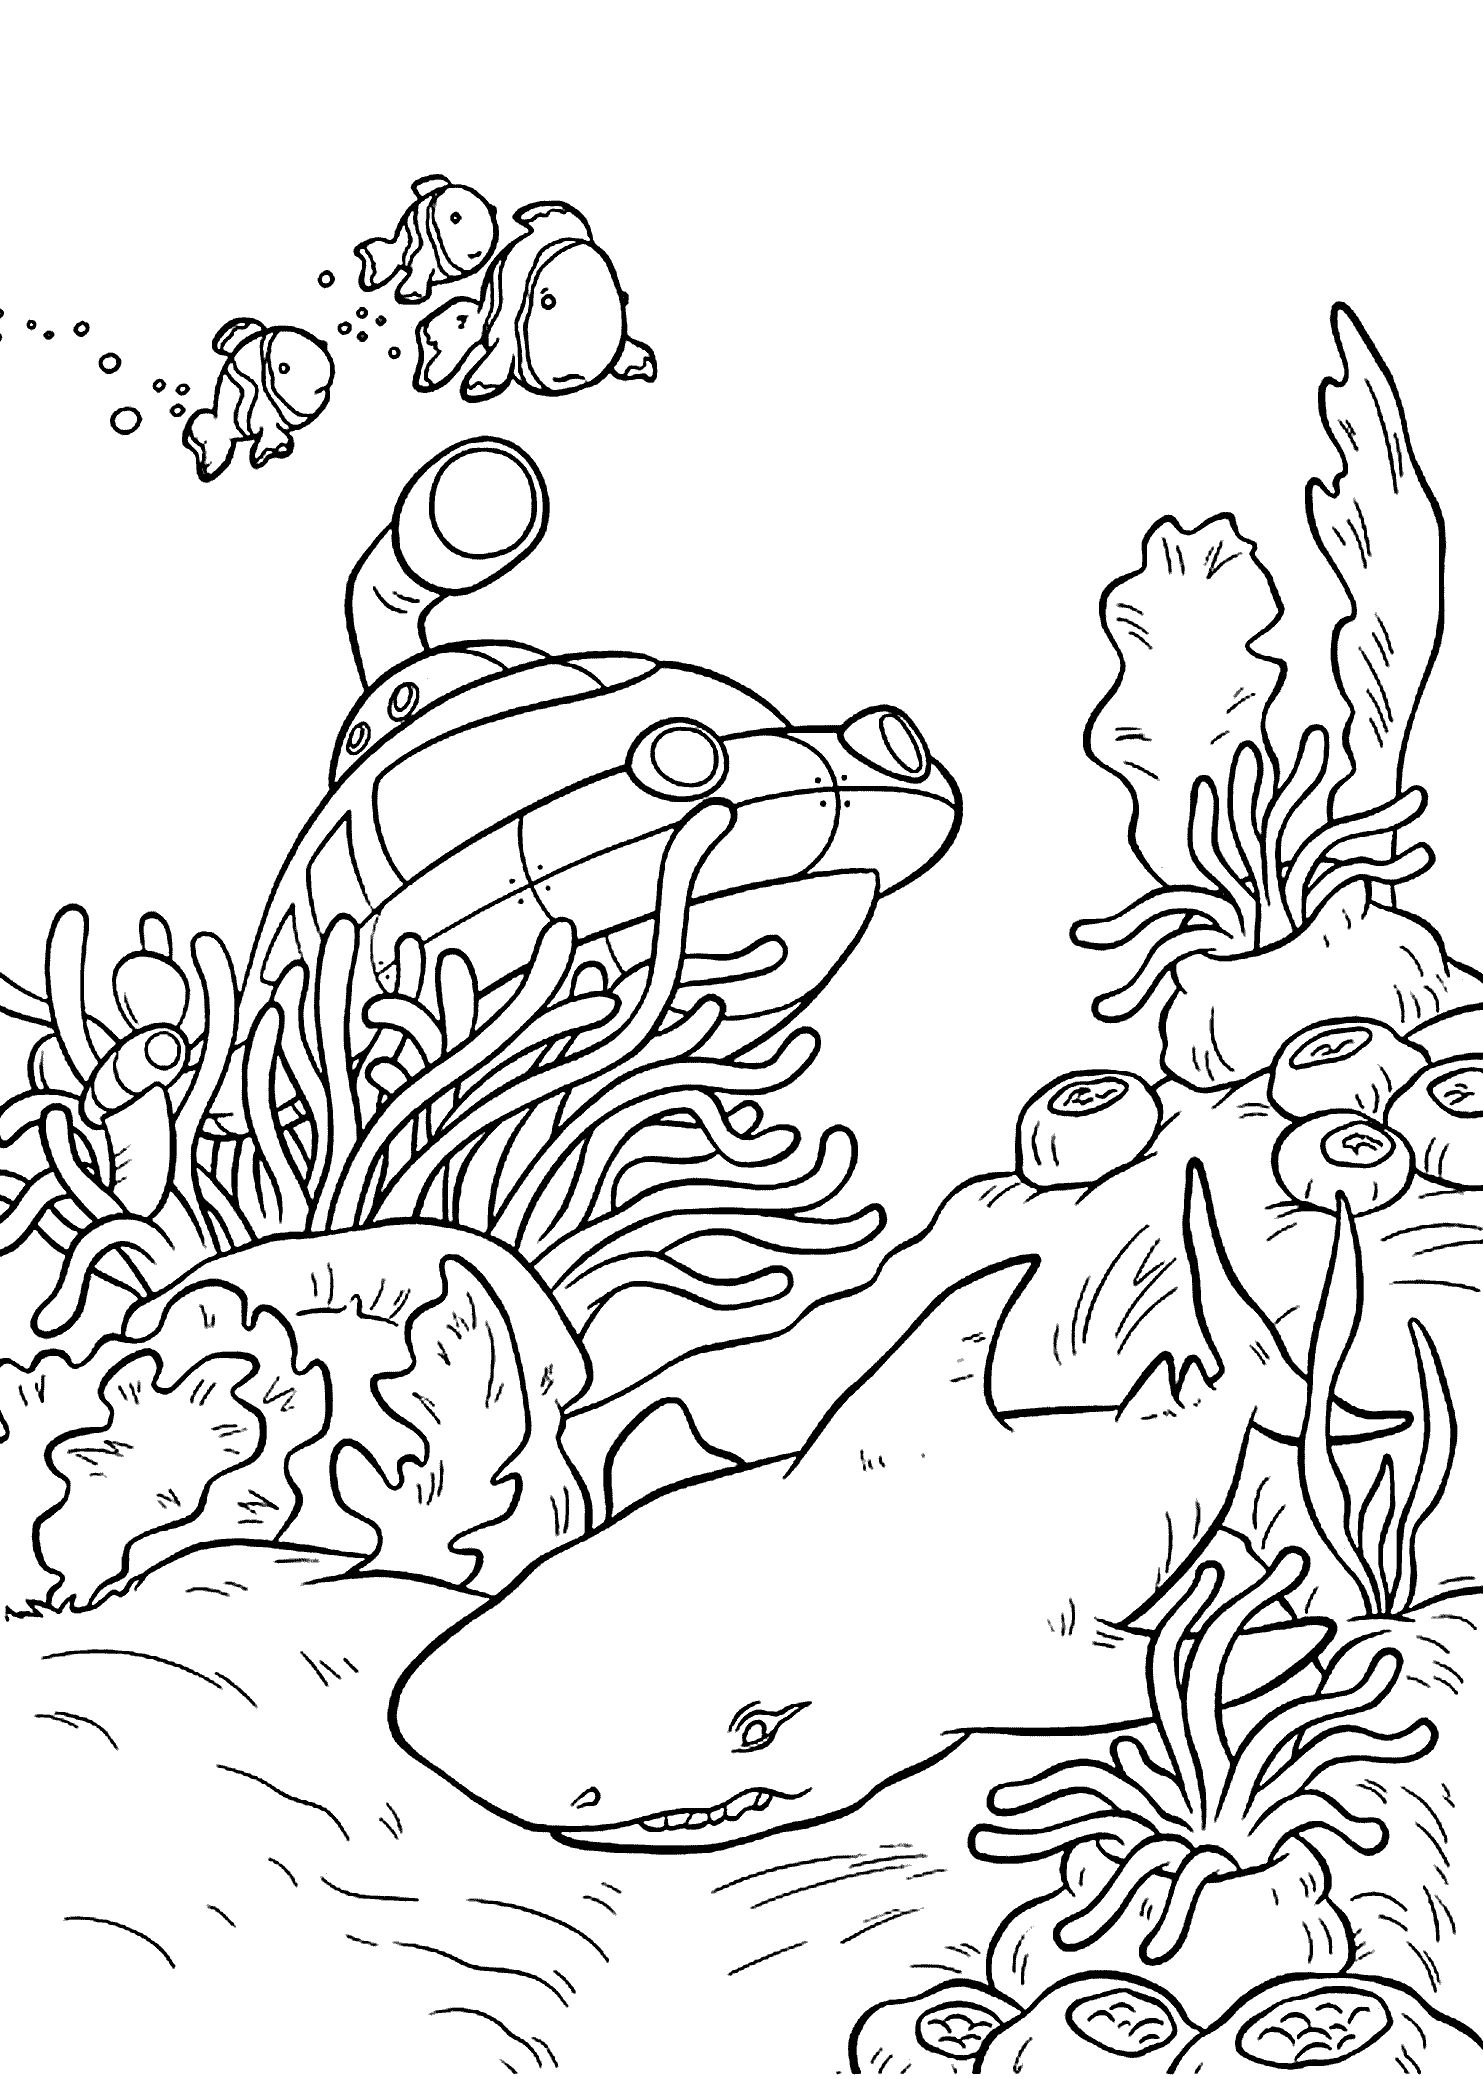 Fresh Adult Coloring Pages Realistic Ocean Design Printable